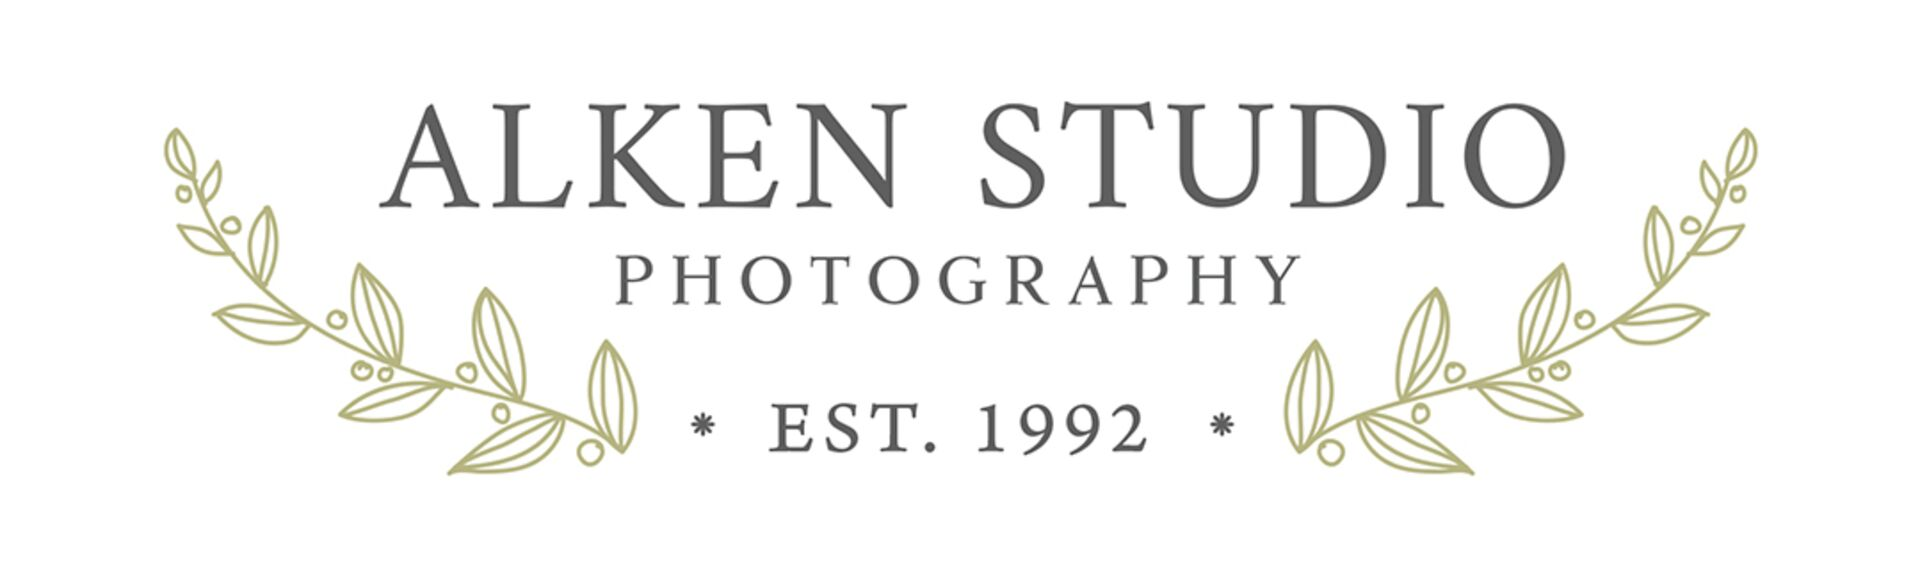 Alken Studio - Photographer - Wayne, NJ